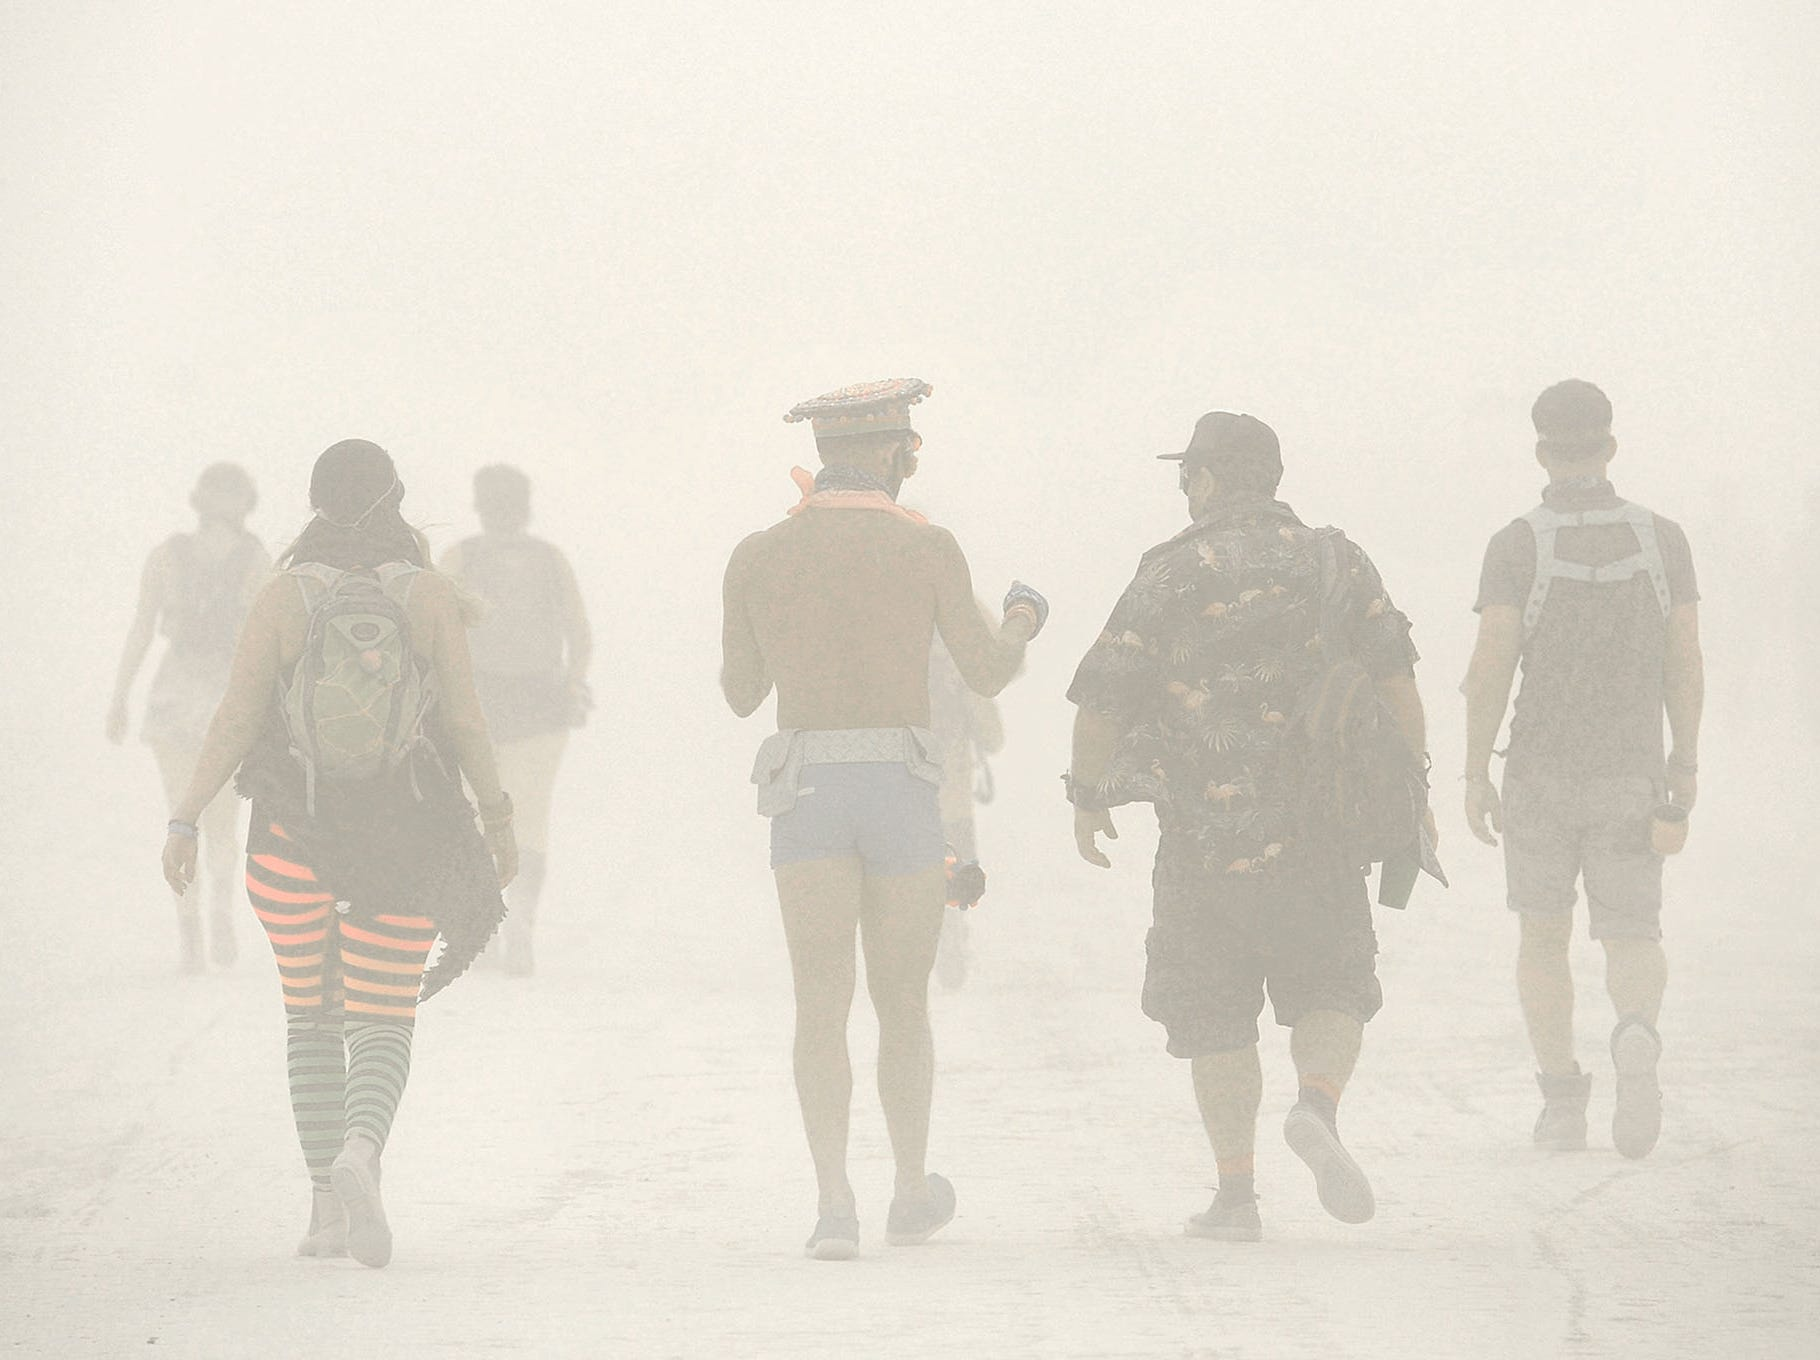 Burners walk and talk during a dust storm on Sunday, Aug. 26, 2018 at Burning Man in the Nevada desert. The storm lasted all day, causing the gates into the event to close while the storm lasted.